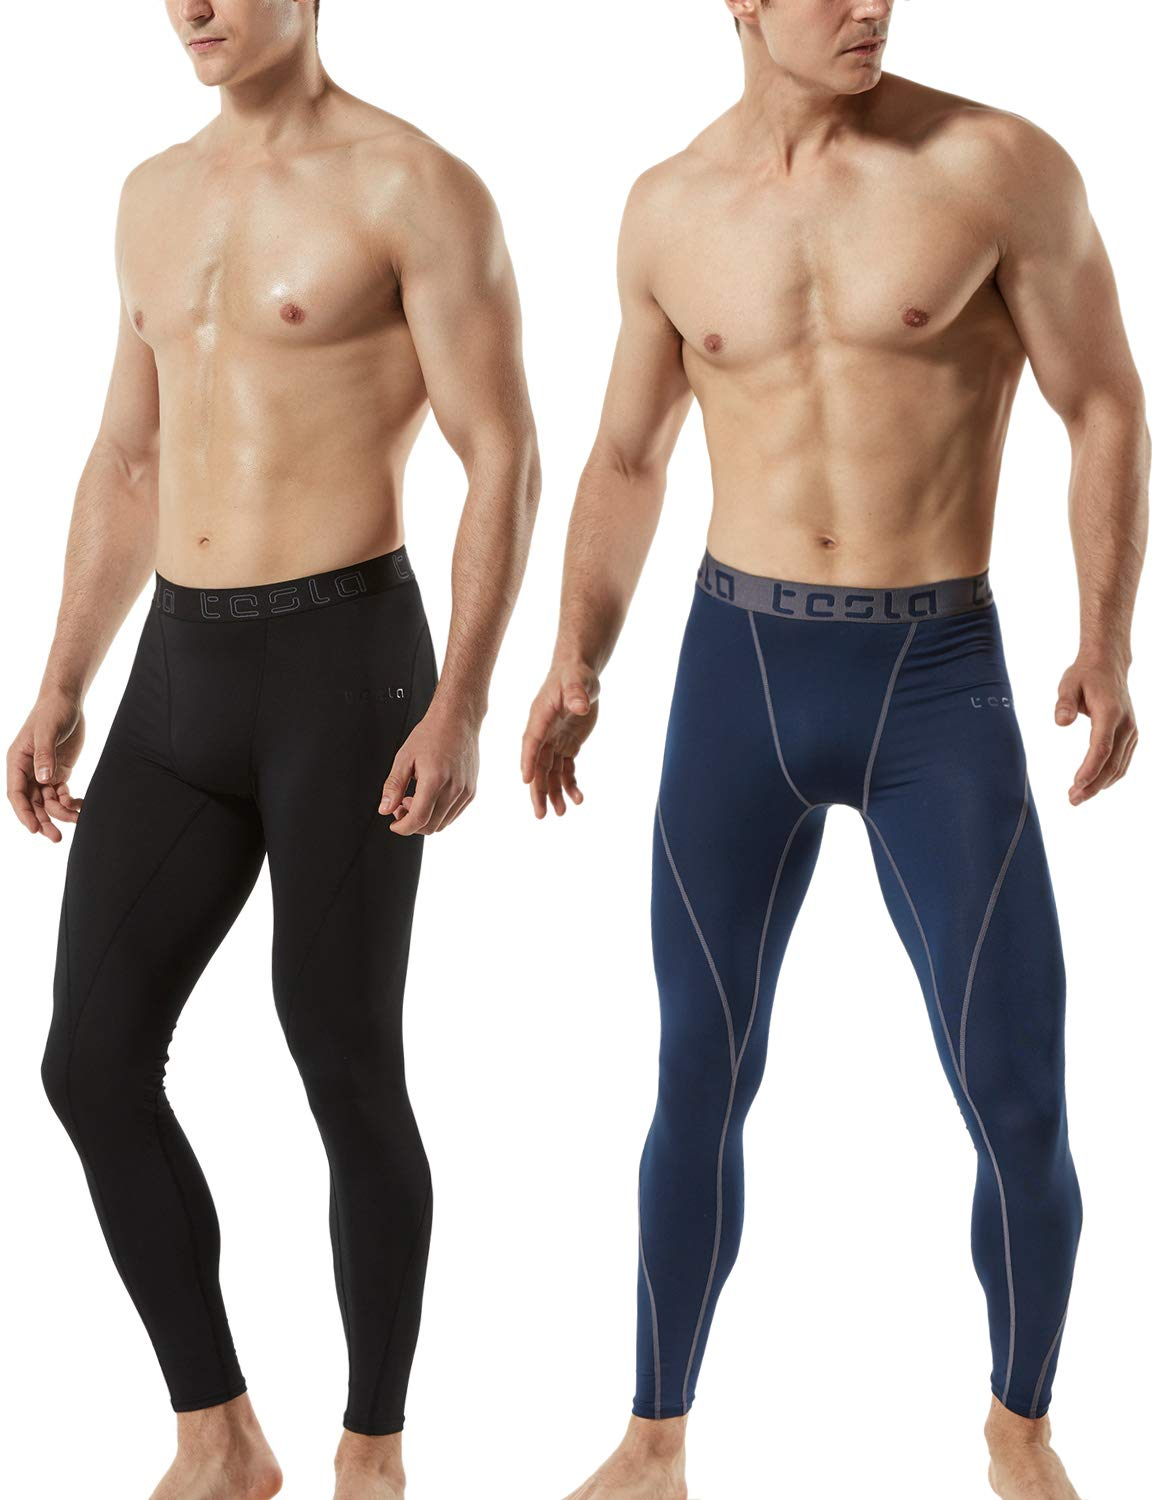 TSLA Mens Pack of 2-MUP19 Compression Pants Baselayer Cool Dry Sports Tights Leggings MUP92